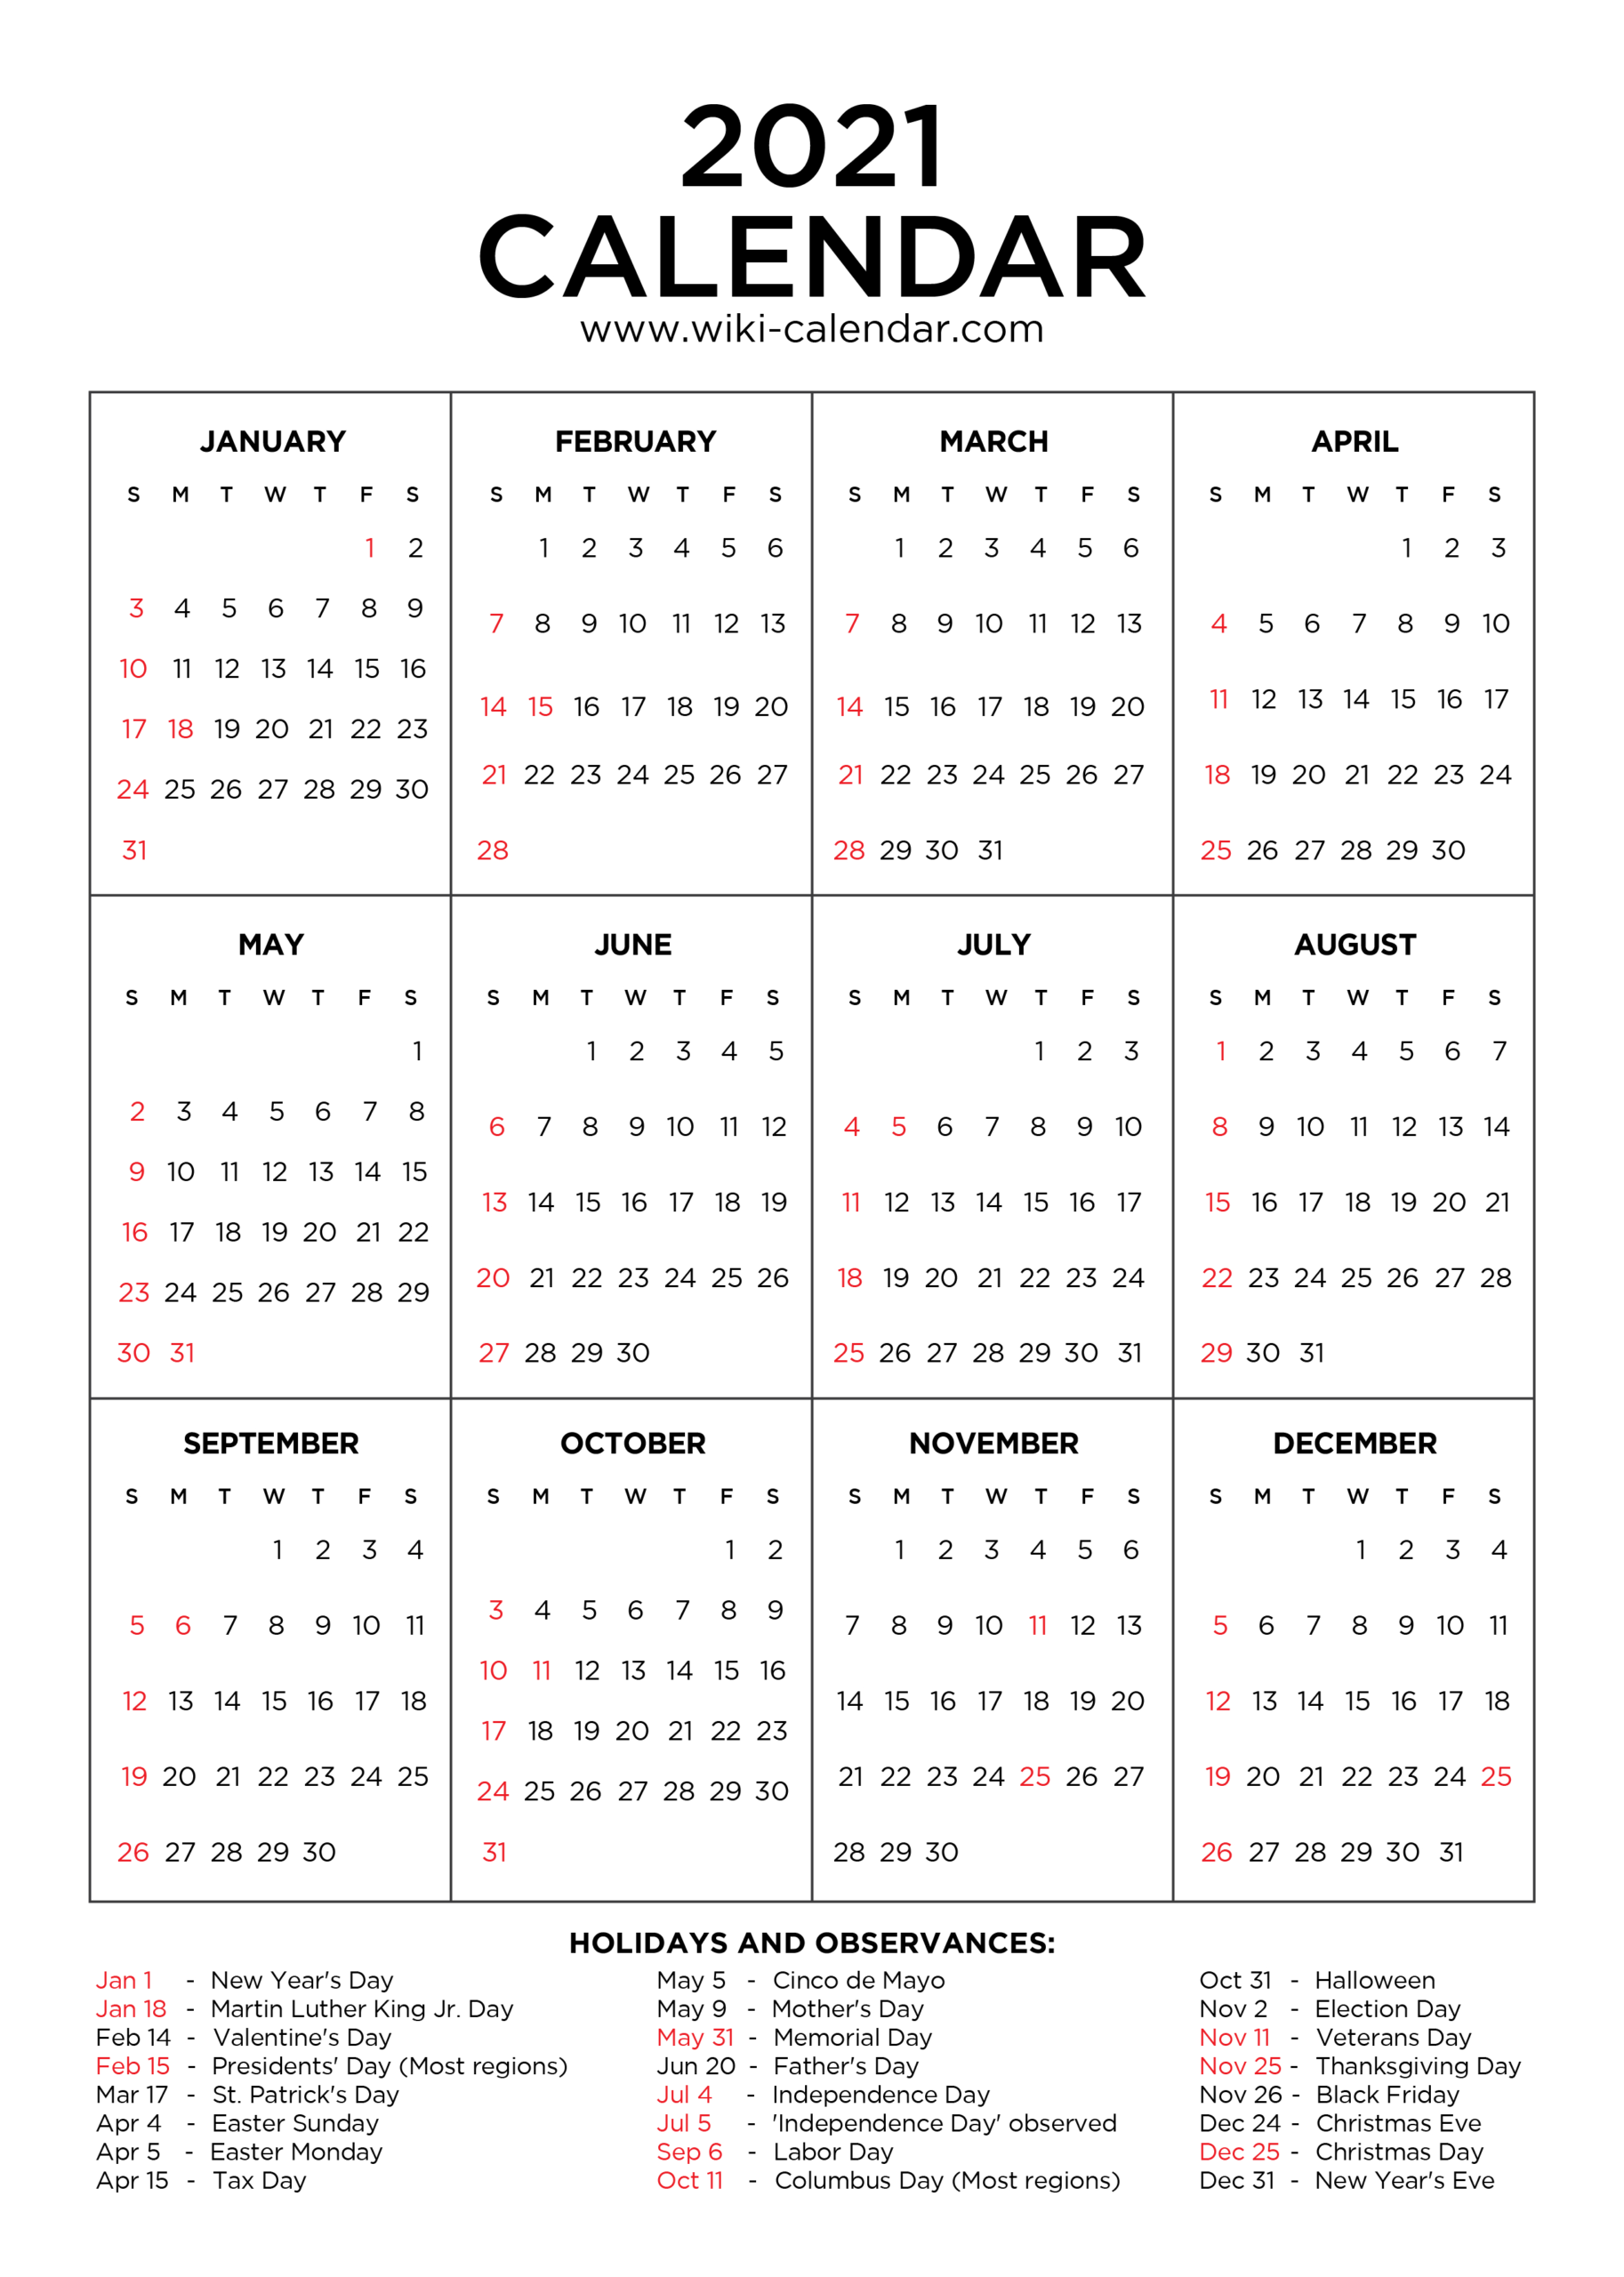 Free Printable Year 2021 Calendar With Holidays pertaining to Free Print 2021 Calendars Without Downloading